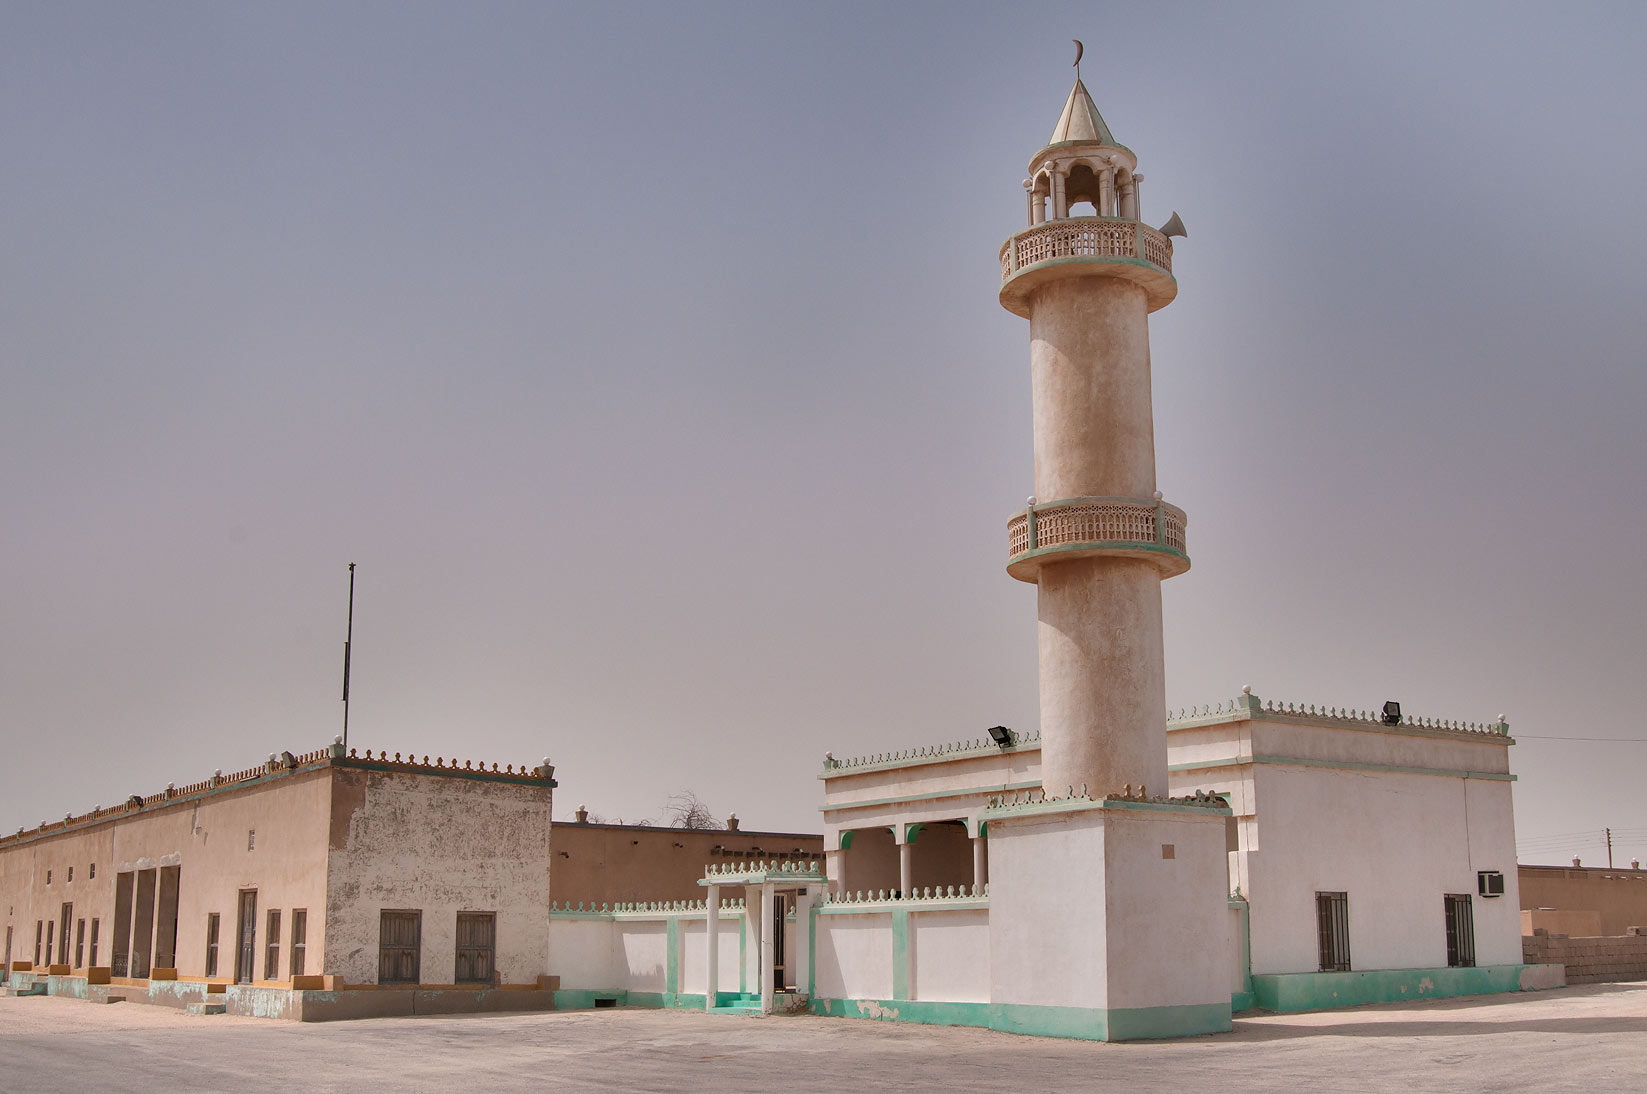 Mosque in Trainah Garden, 50 miles south-west from Doha. Qatar